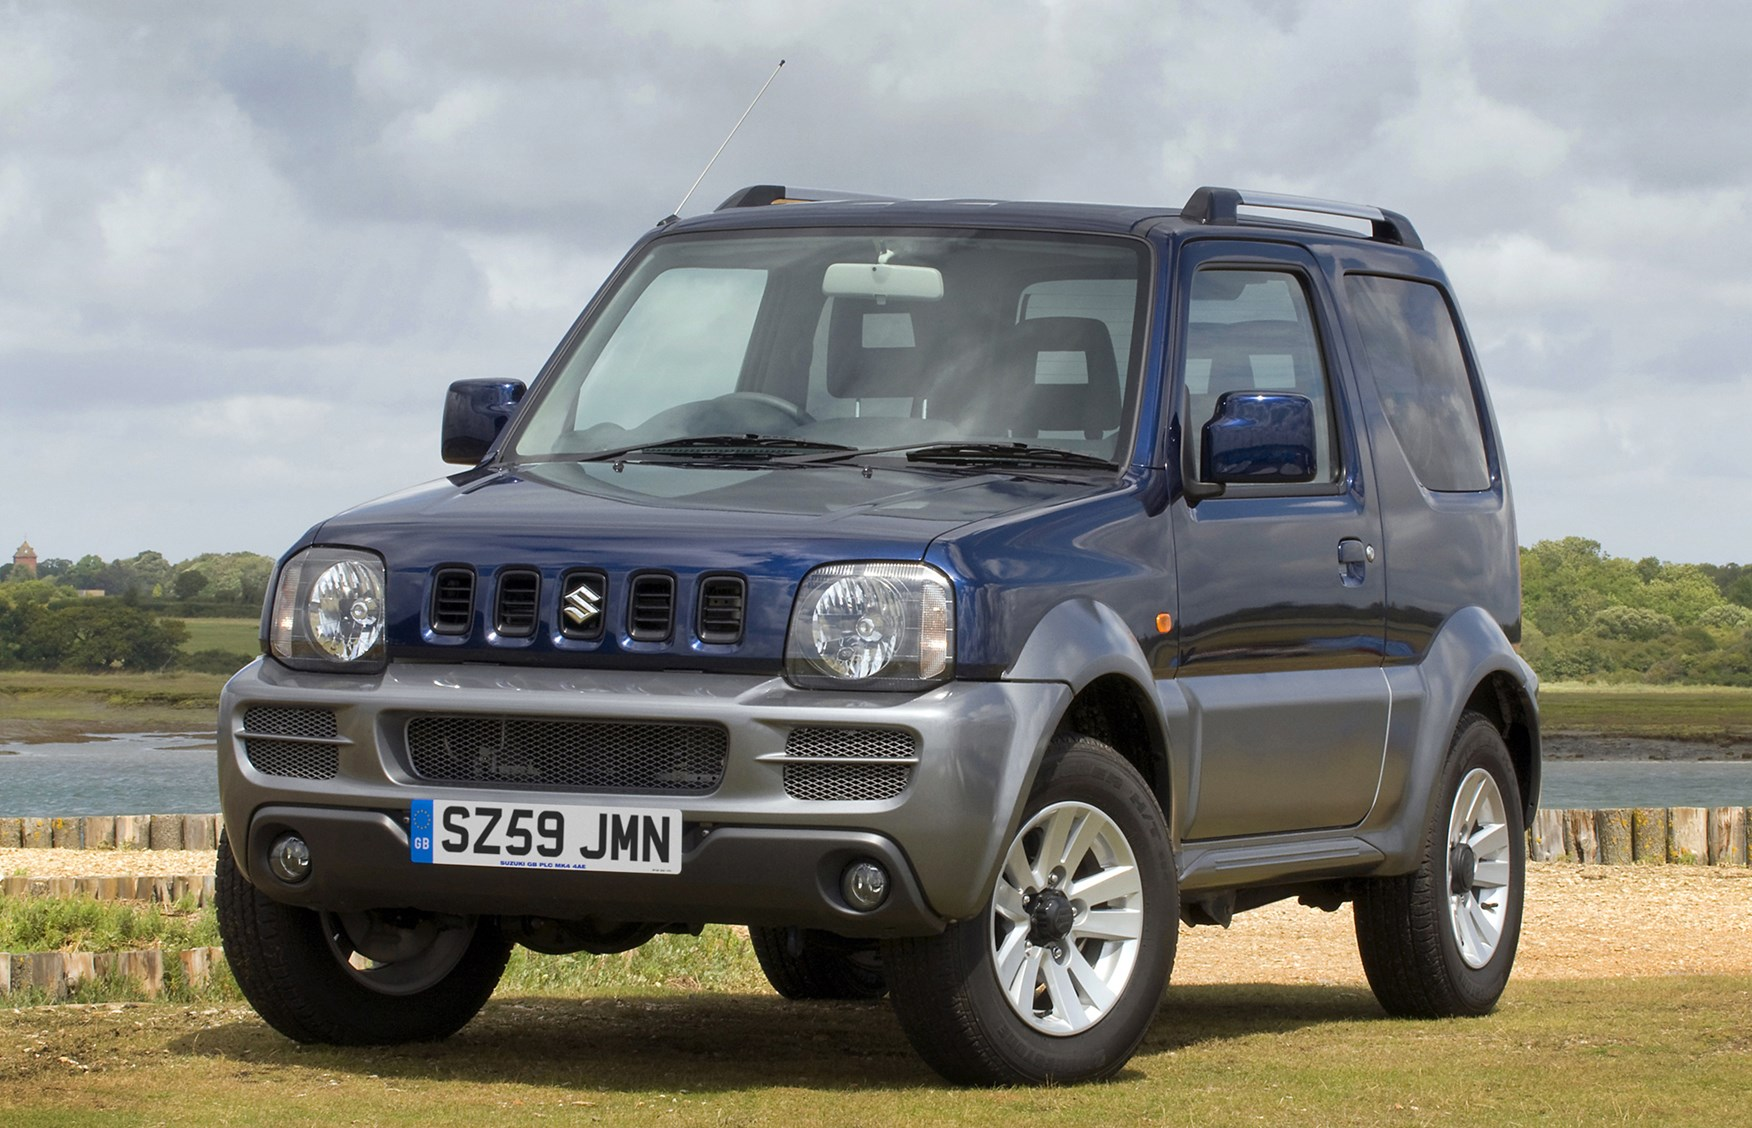 2009 suzuki jimny photos informations articles. Black Bedroom Furniture Sets. Home Design Ideas